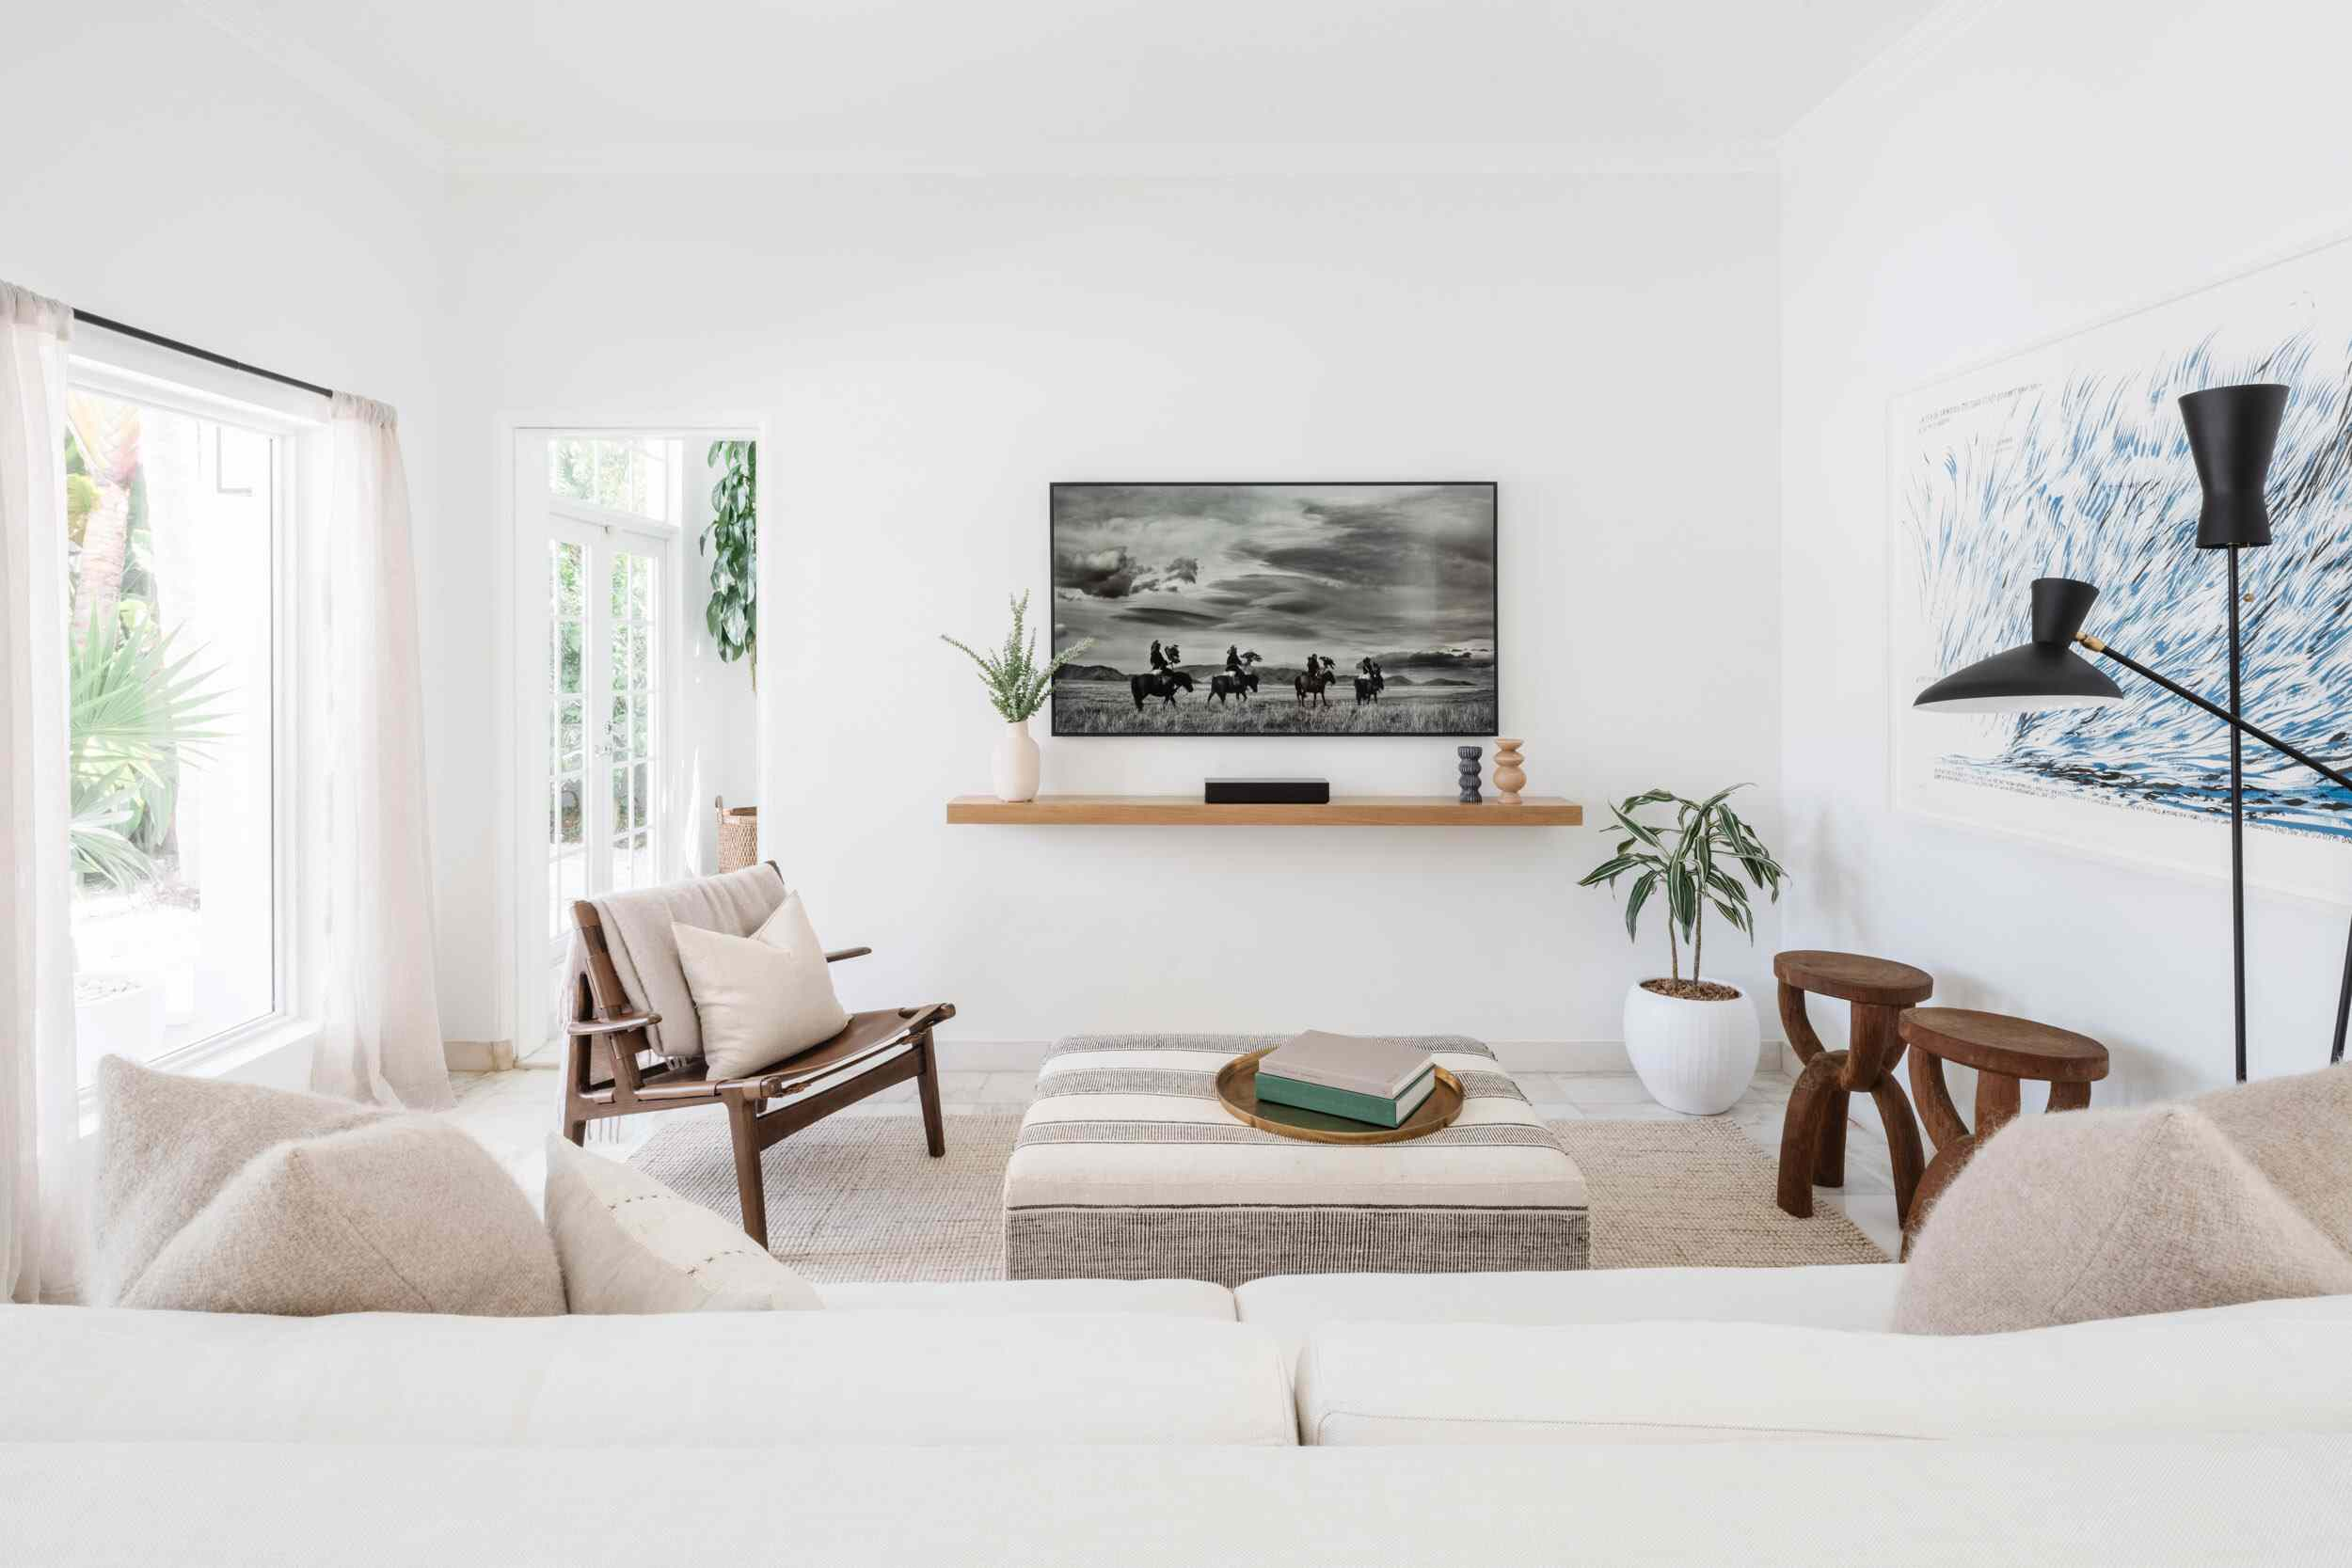 A mostly white living room with a black-and-white poster that looks slate gray from afar